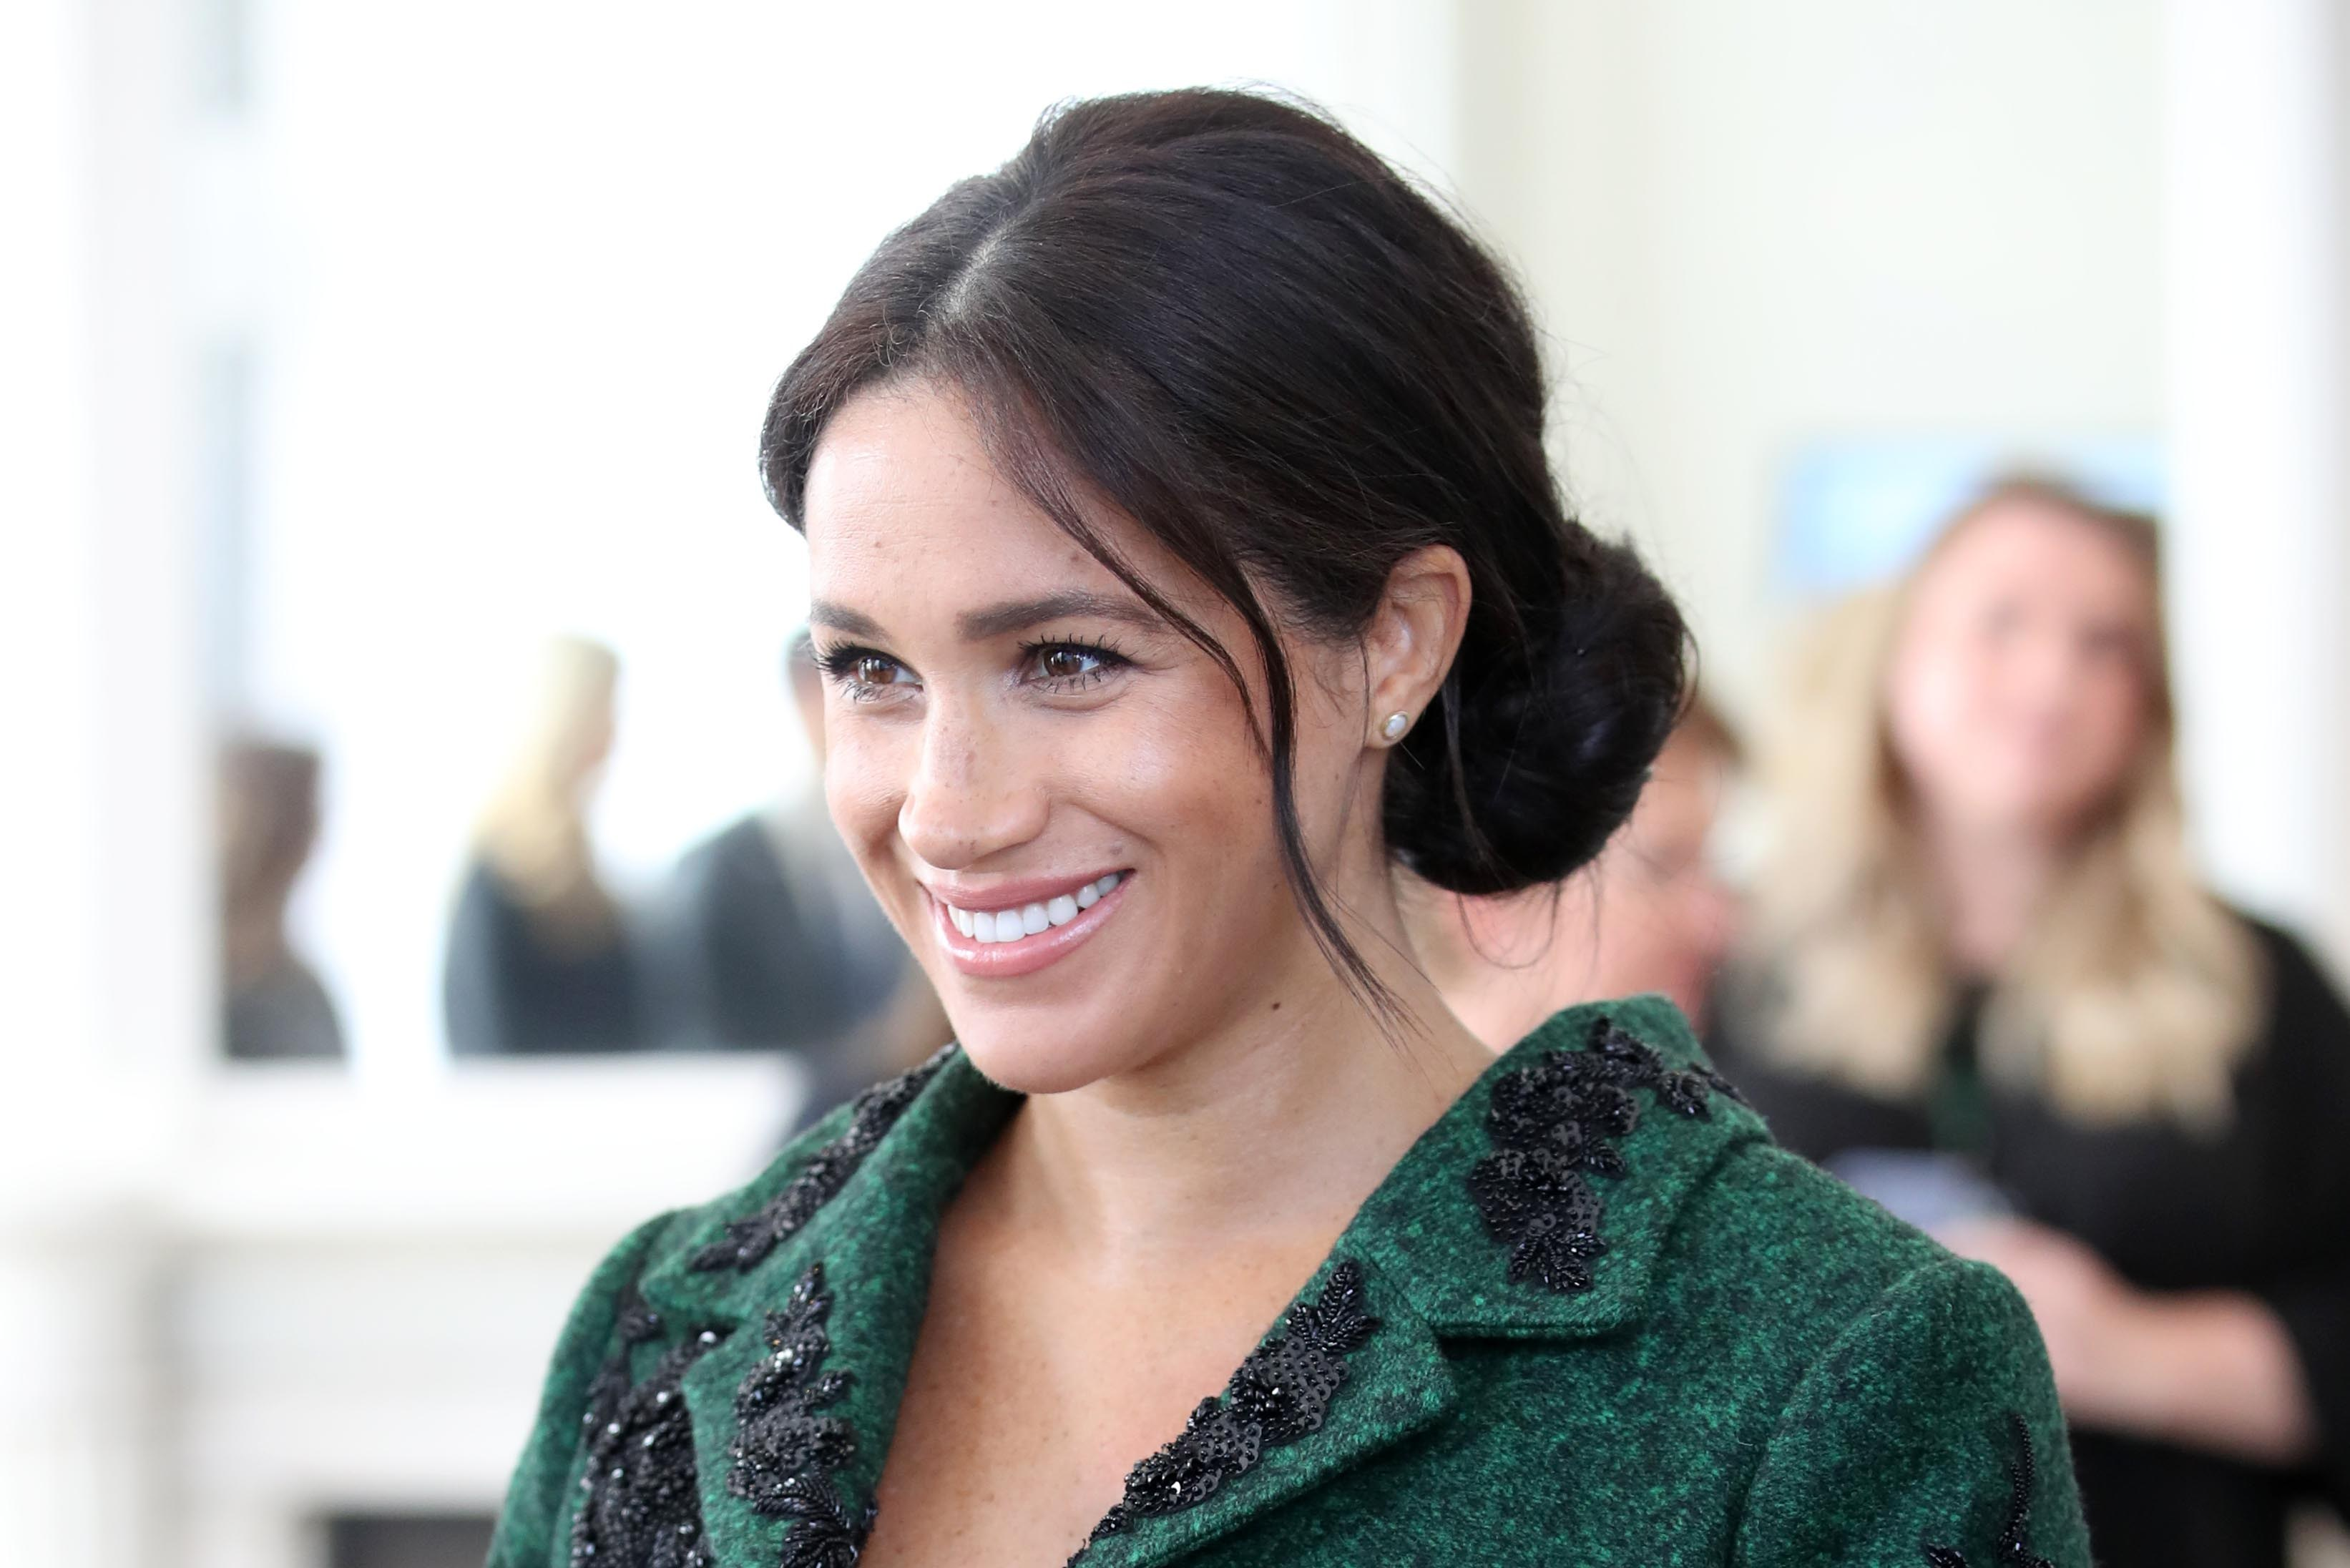 Meghan Markle's home birth 'didn't go to plan because of her untried pelvis', doctor claims